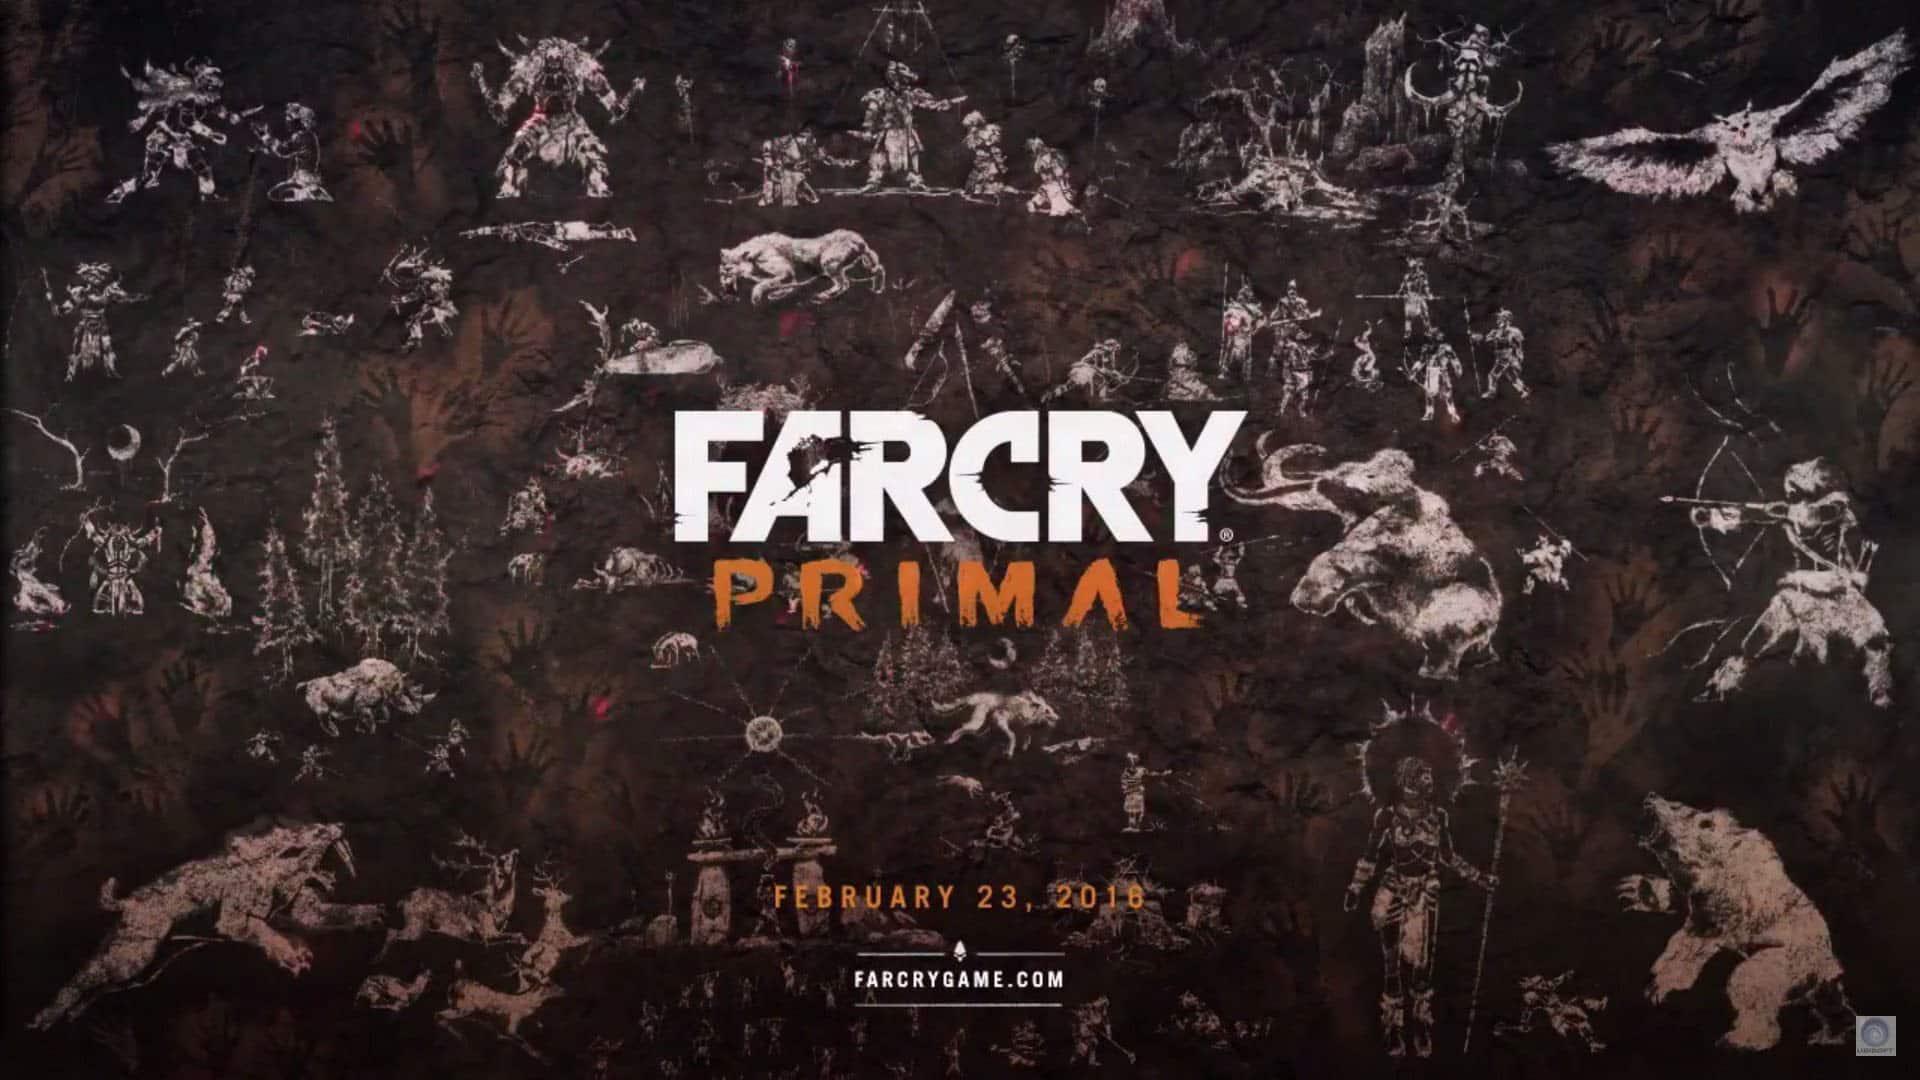 far cry 1 pc game free download full version with crack